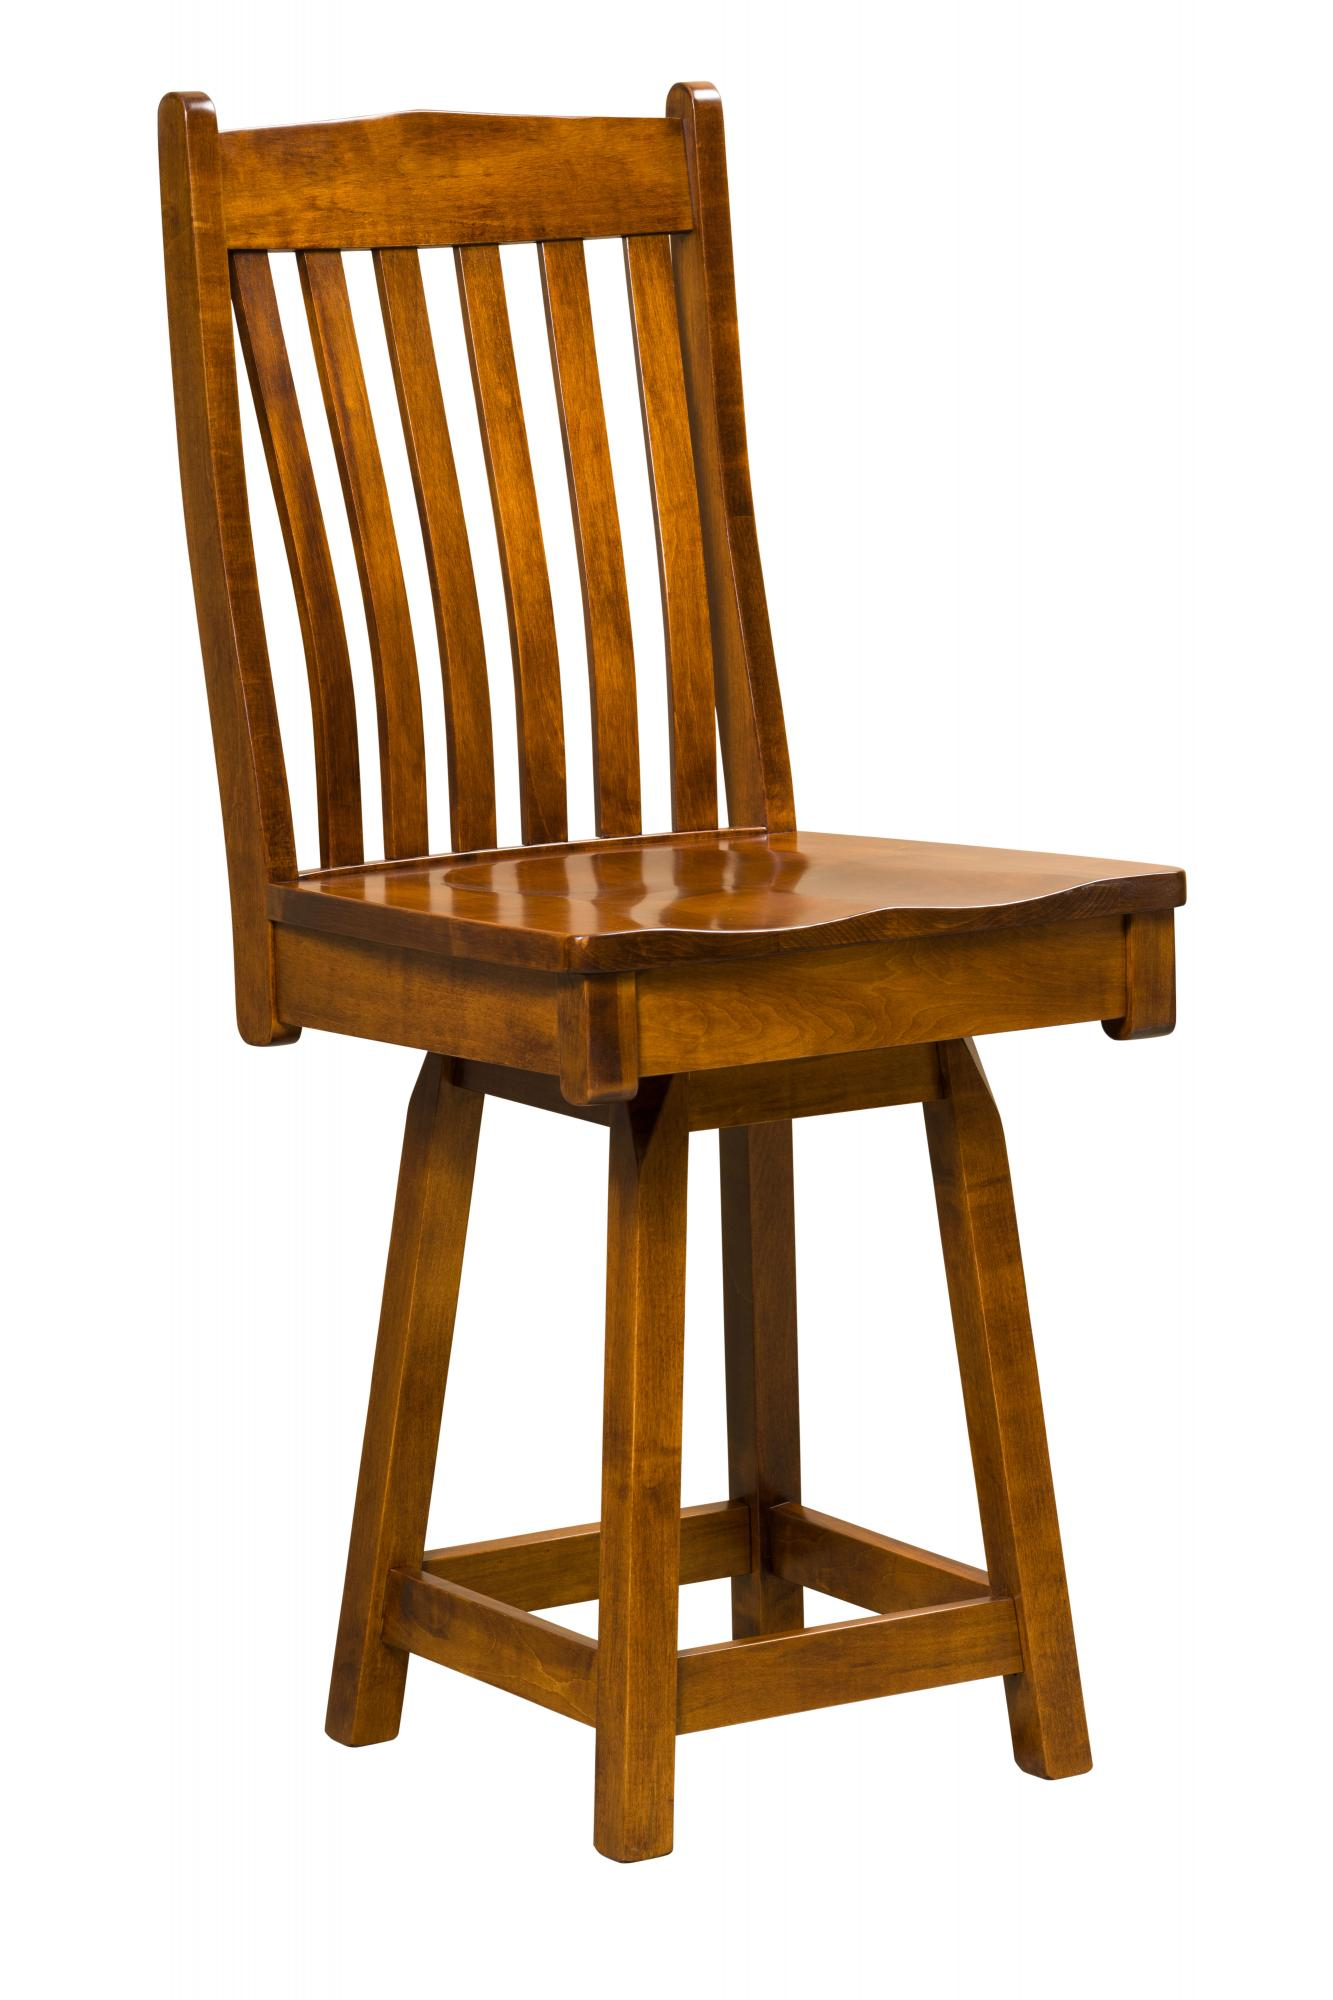 bar stool baby high chair walmart tables and chairs liberty dining amish furniture store mankato mn